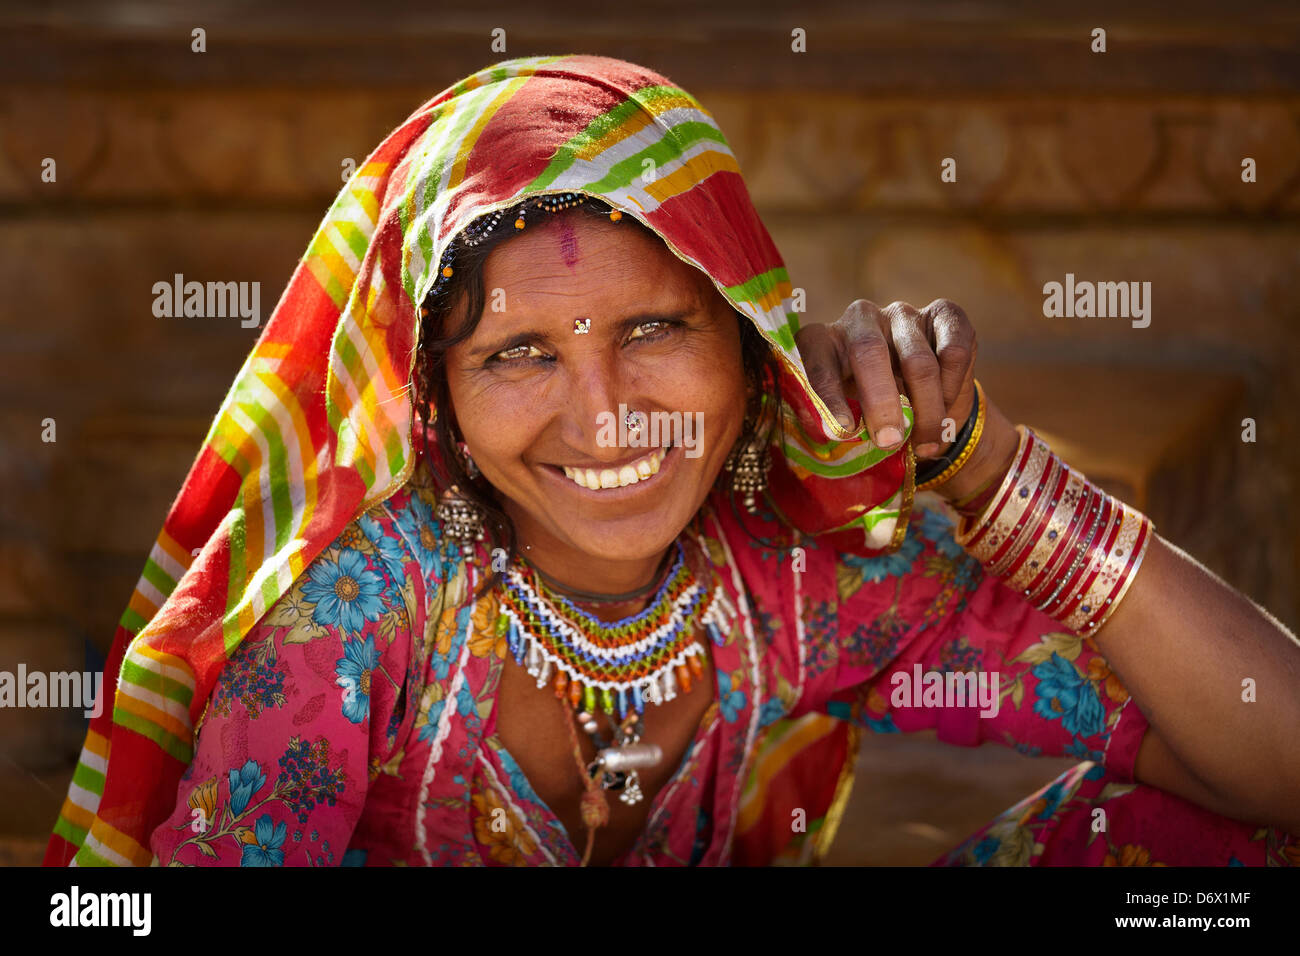 Portrait of smiling woman l'Inde, Jaisalmer, Rajasthan, India Photo Stock